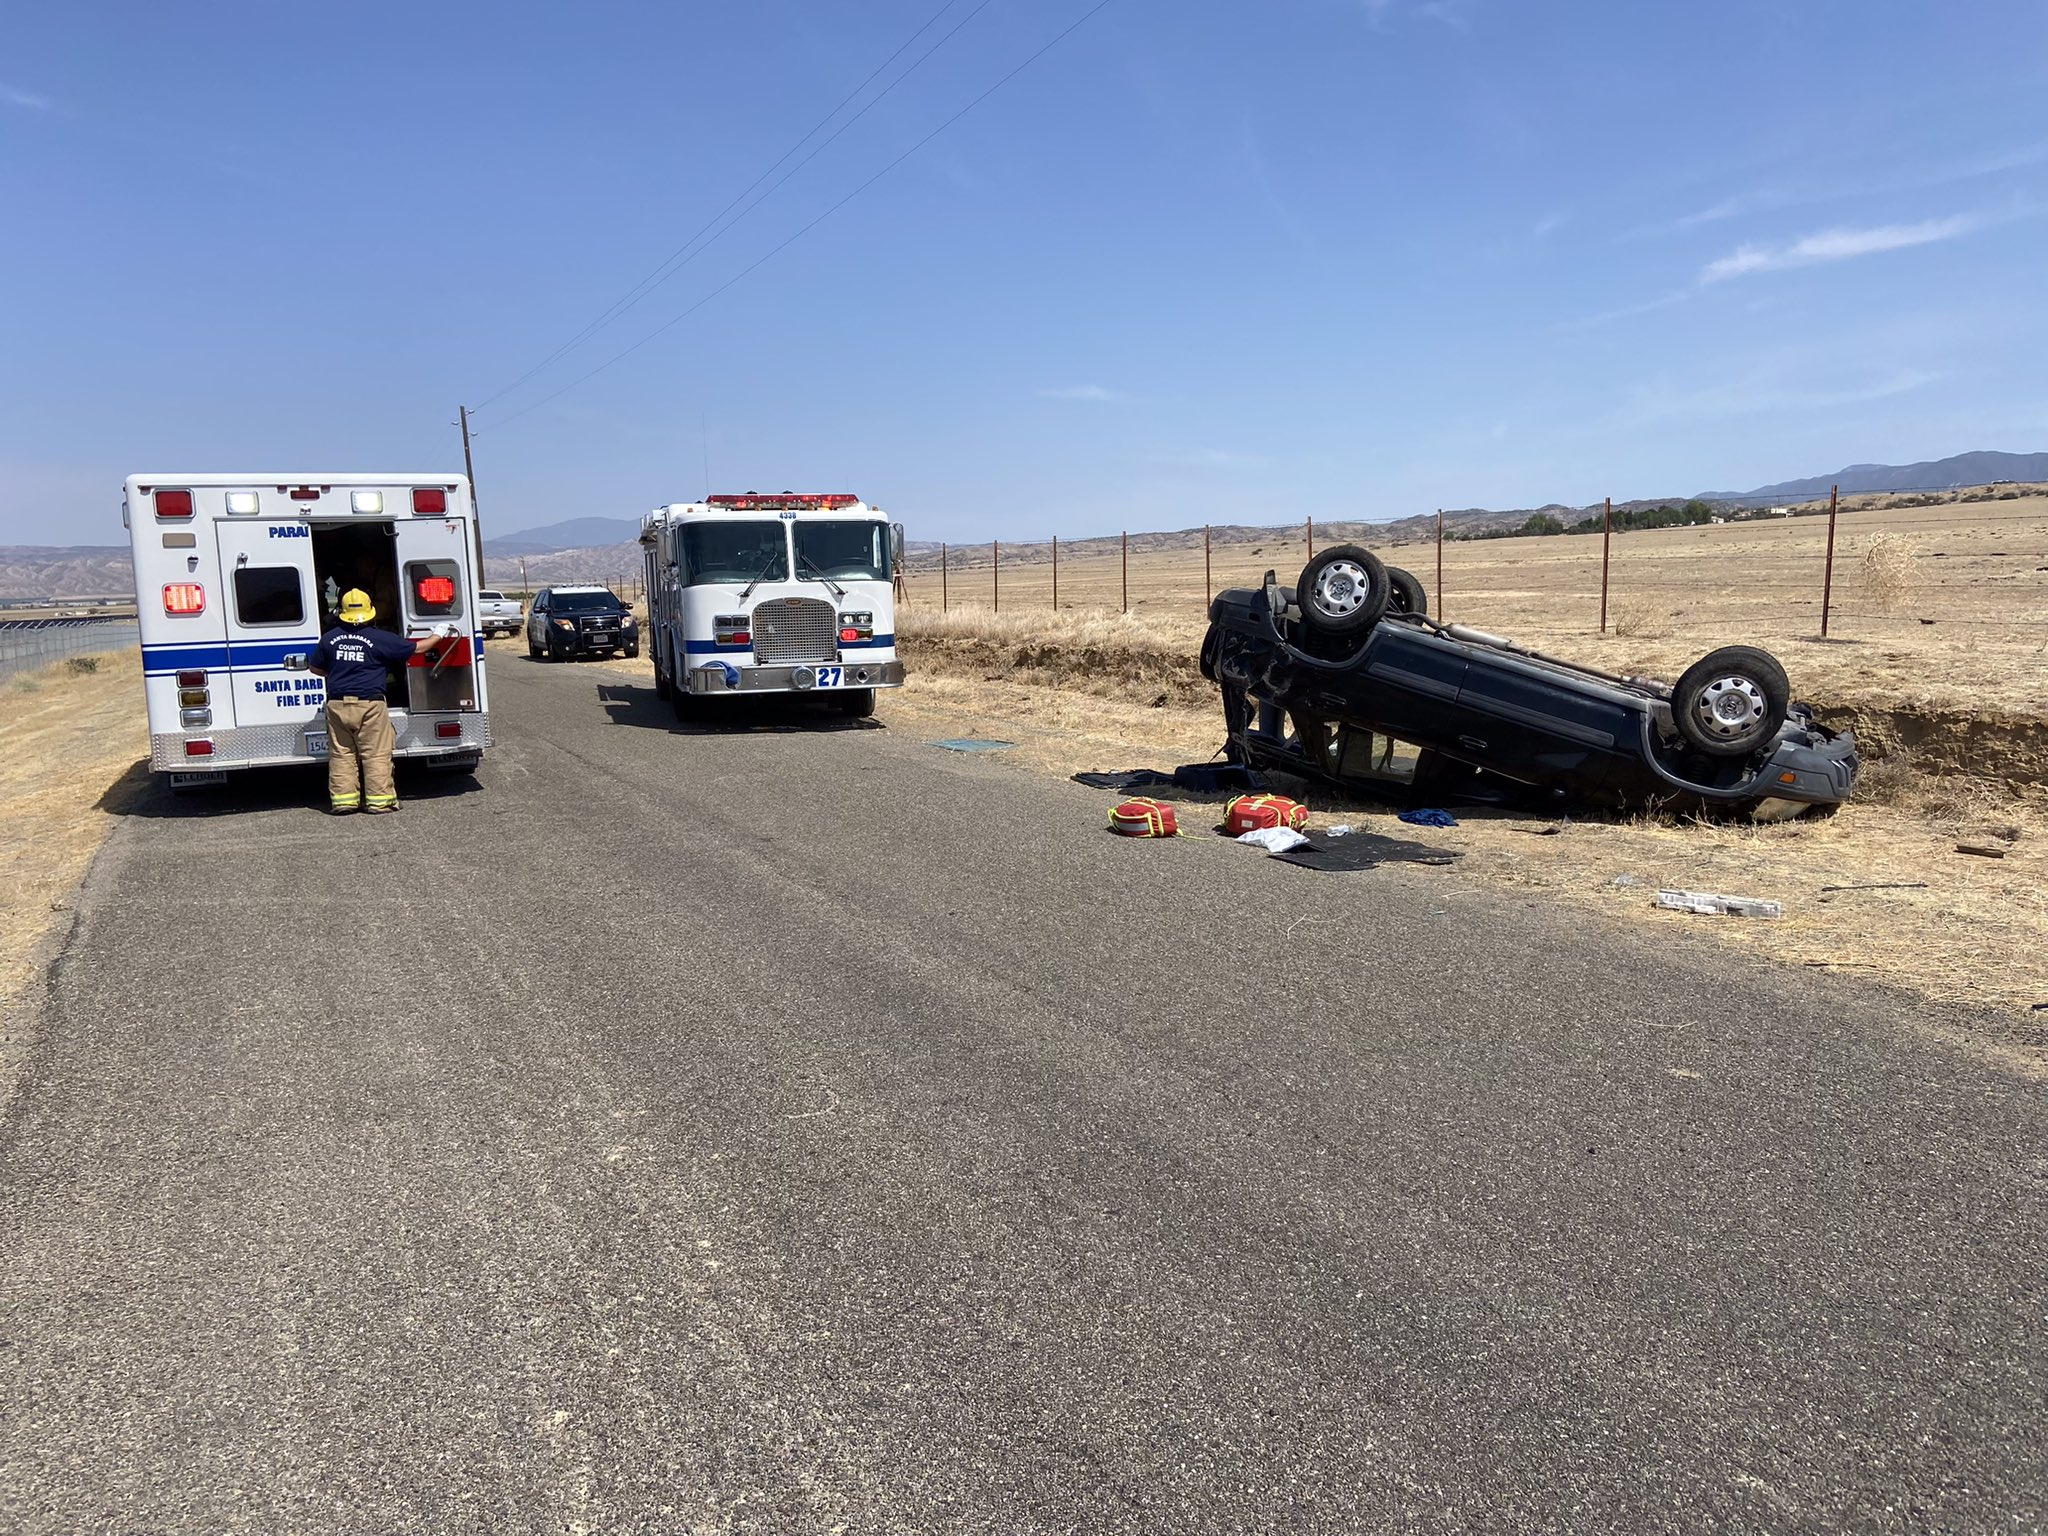 Two people were seriously injured in a rollover crash in the Cuyama Valley Friday